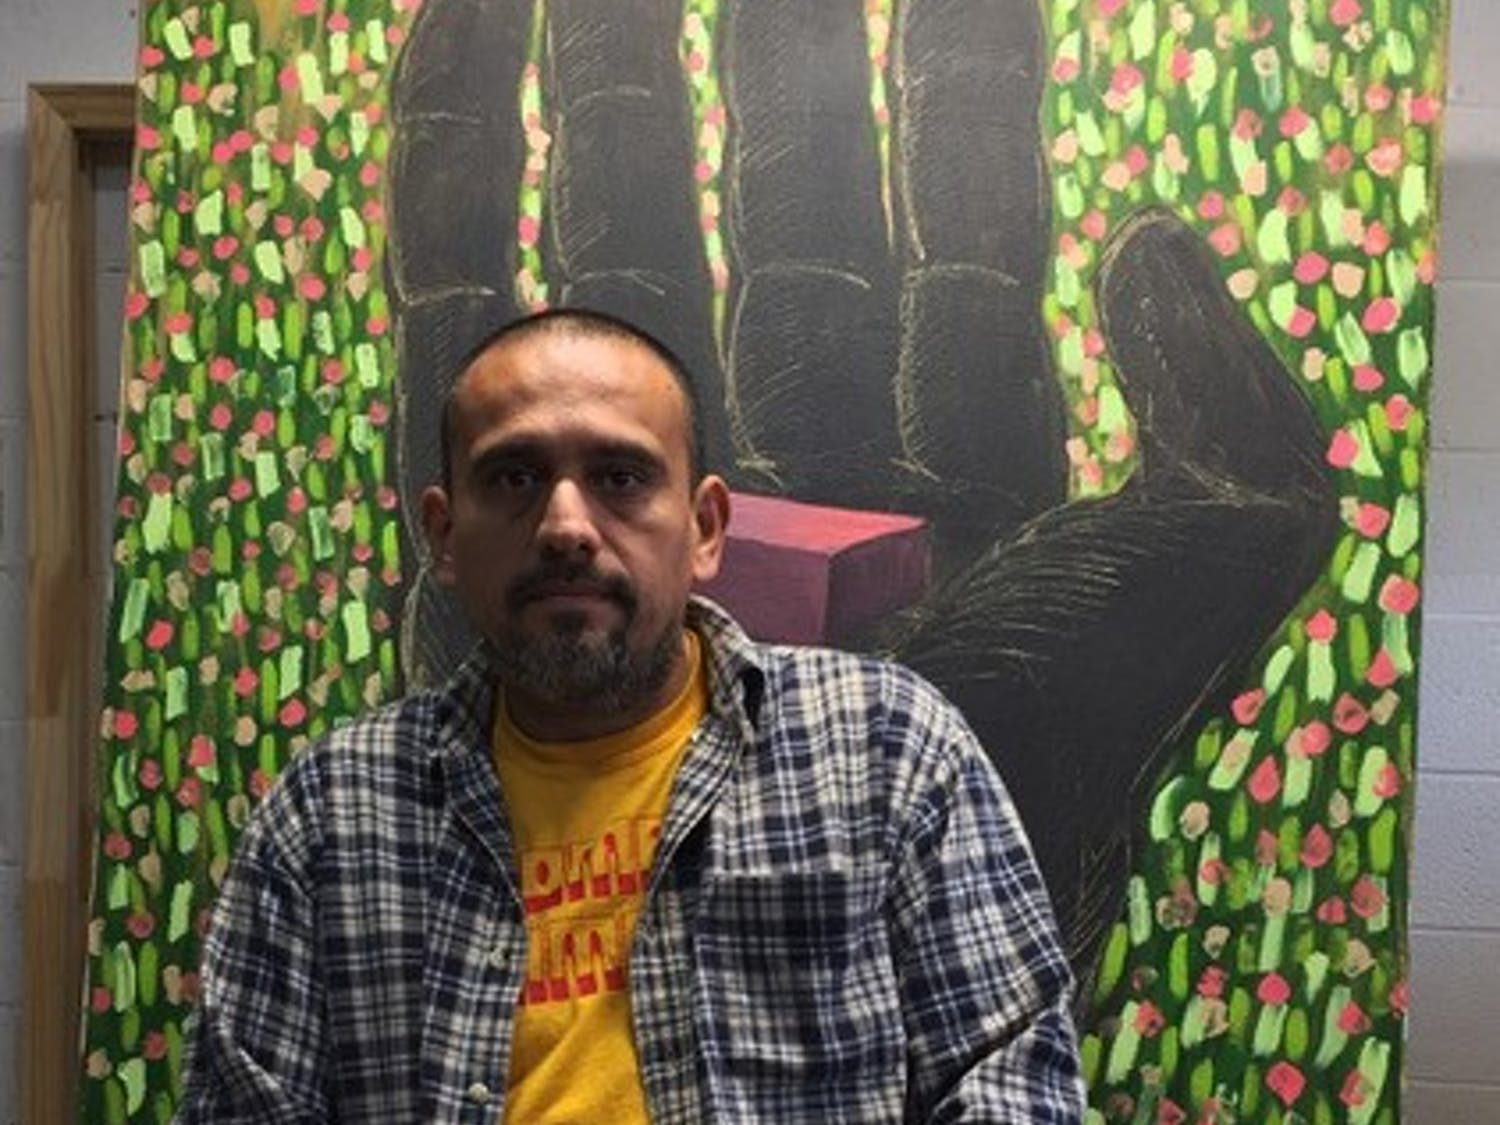 Renzo Ortega sits in his Carrboro studio. He is one of many Orange County artists and musicians who have experienced lifestyle changes as a result of COVID-19. The Orange County Arts Support Fund seeks to assist these artists through community donations. Photo courtesy Renzo Ortega.